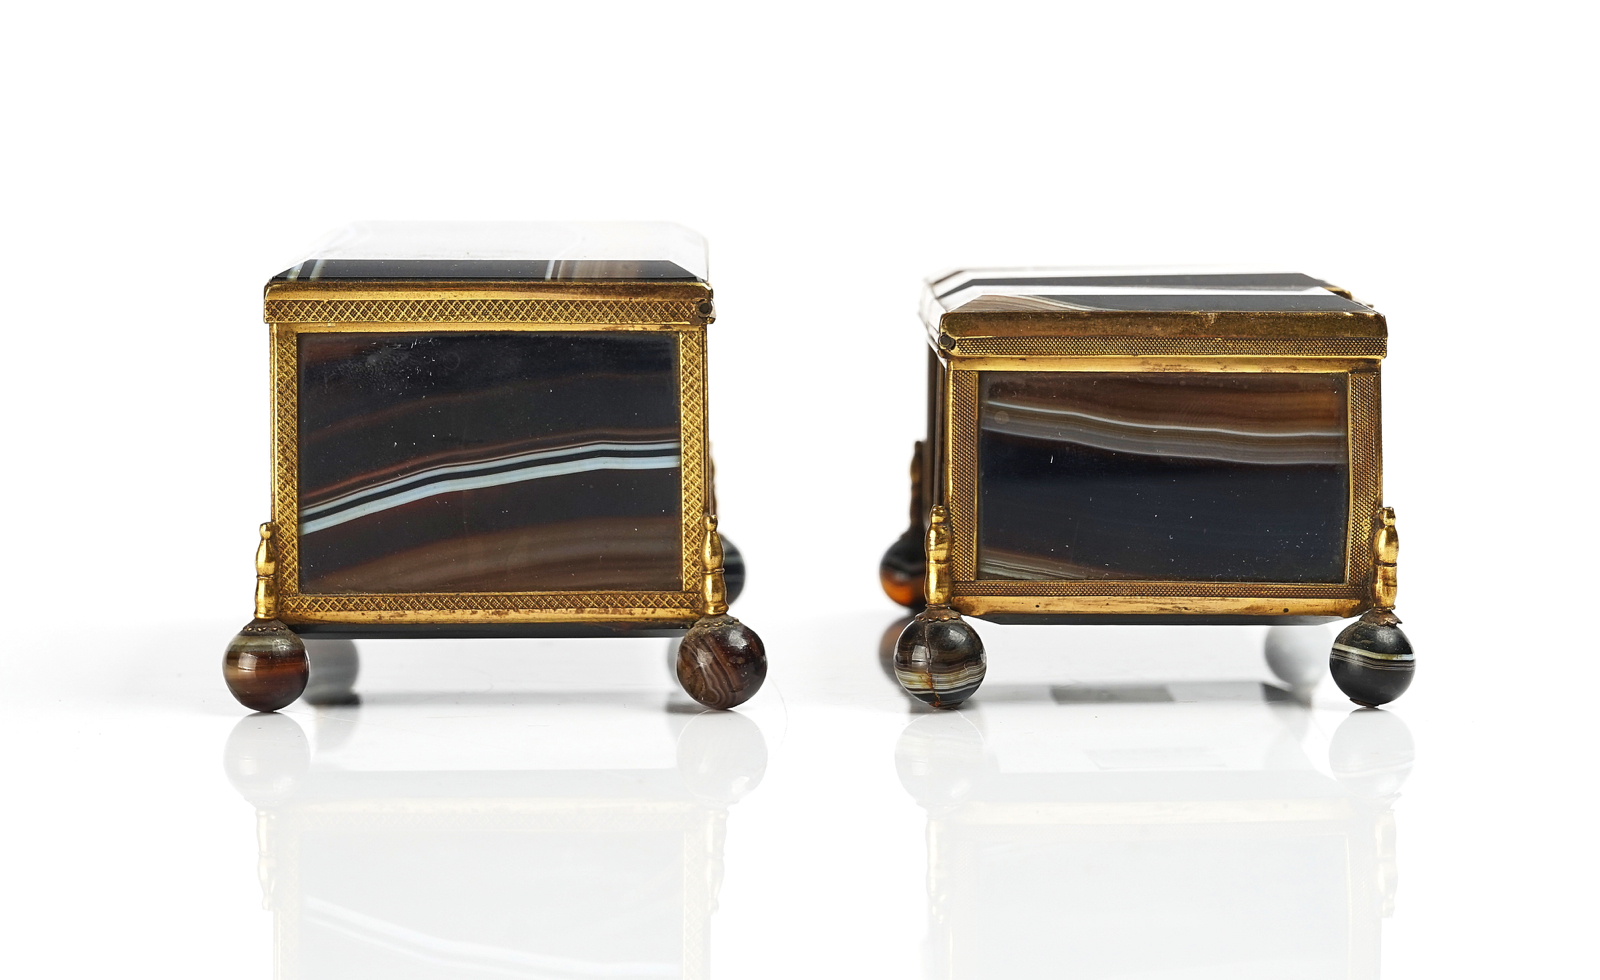 A VICTORIAN ROYAL PRESENTATION FRENCH ORMOLU MOUNTED AGATE CASKET AND ANOTHER SIMILAR - Image 2 of 5